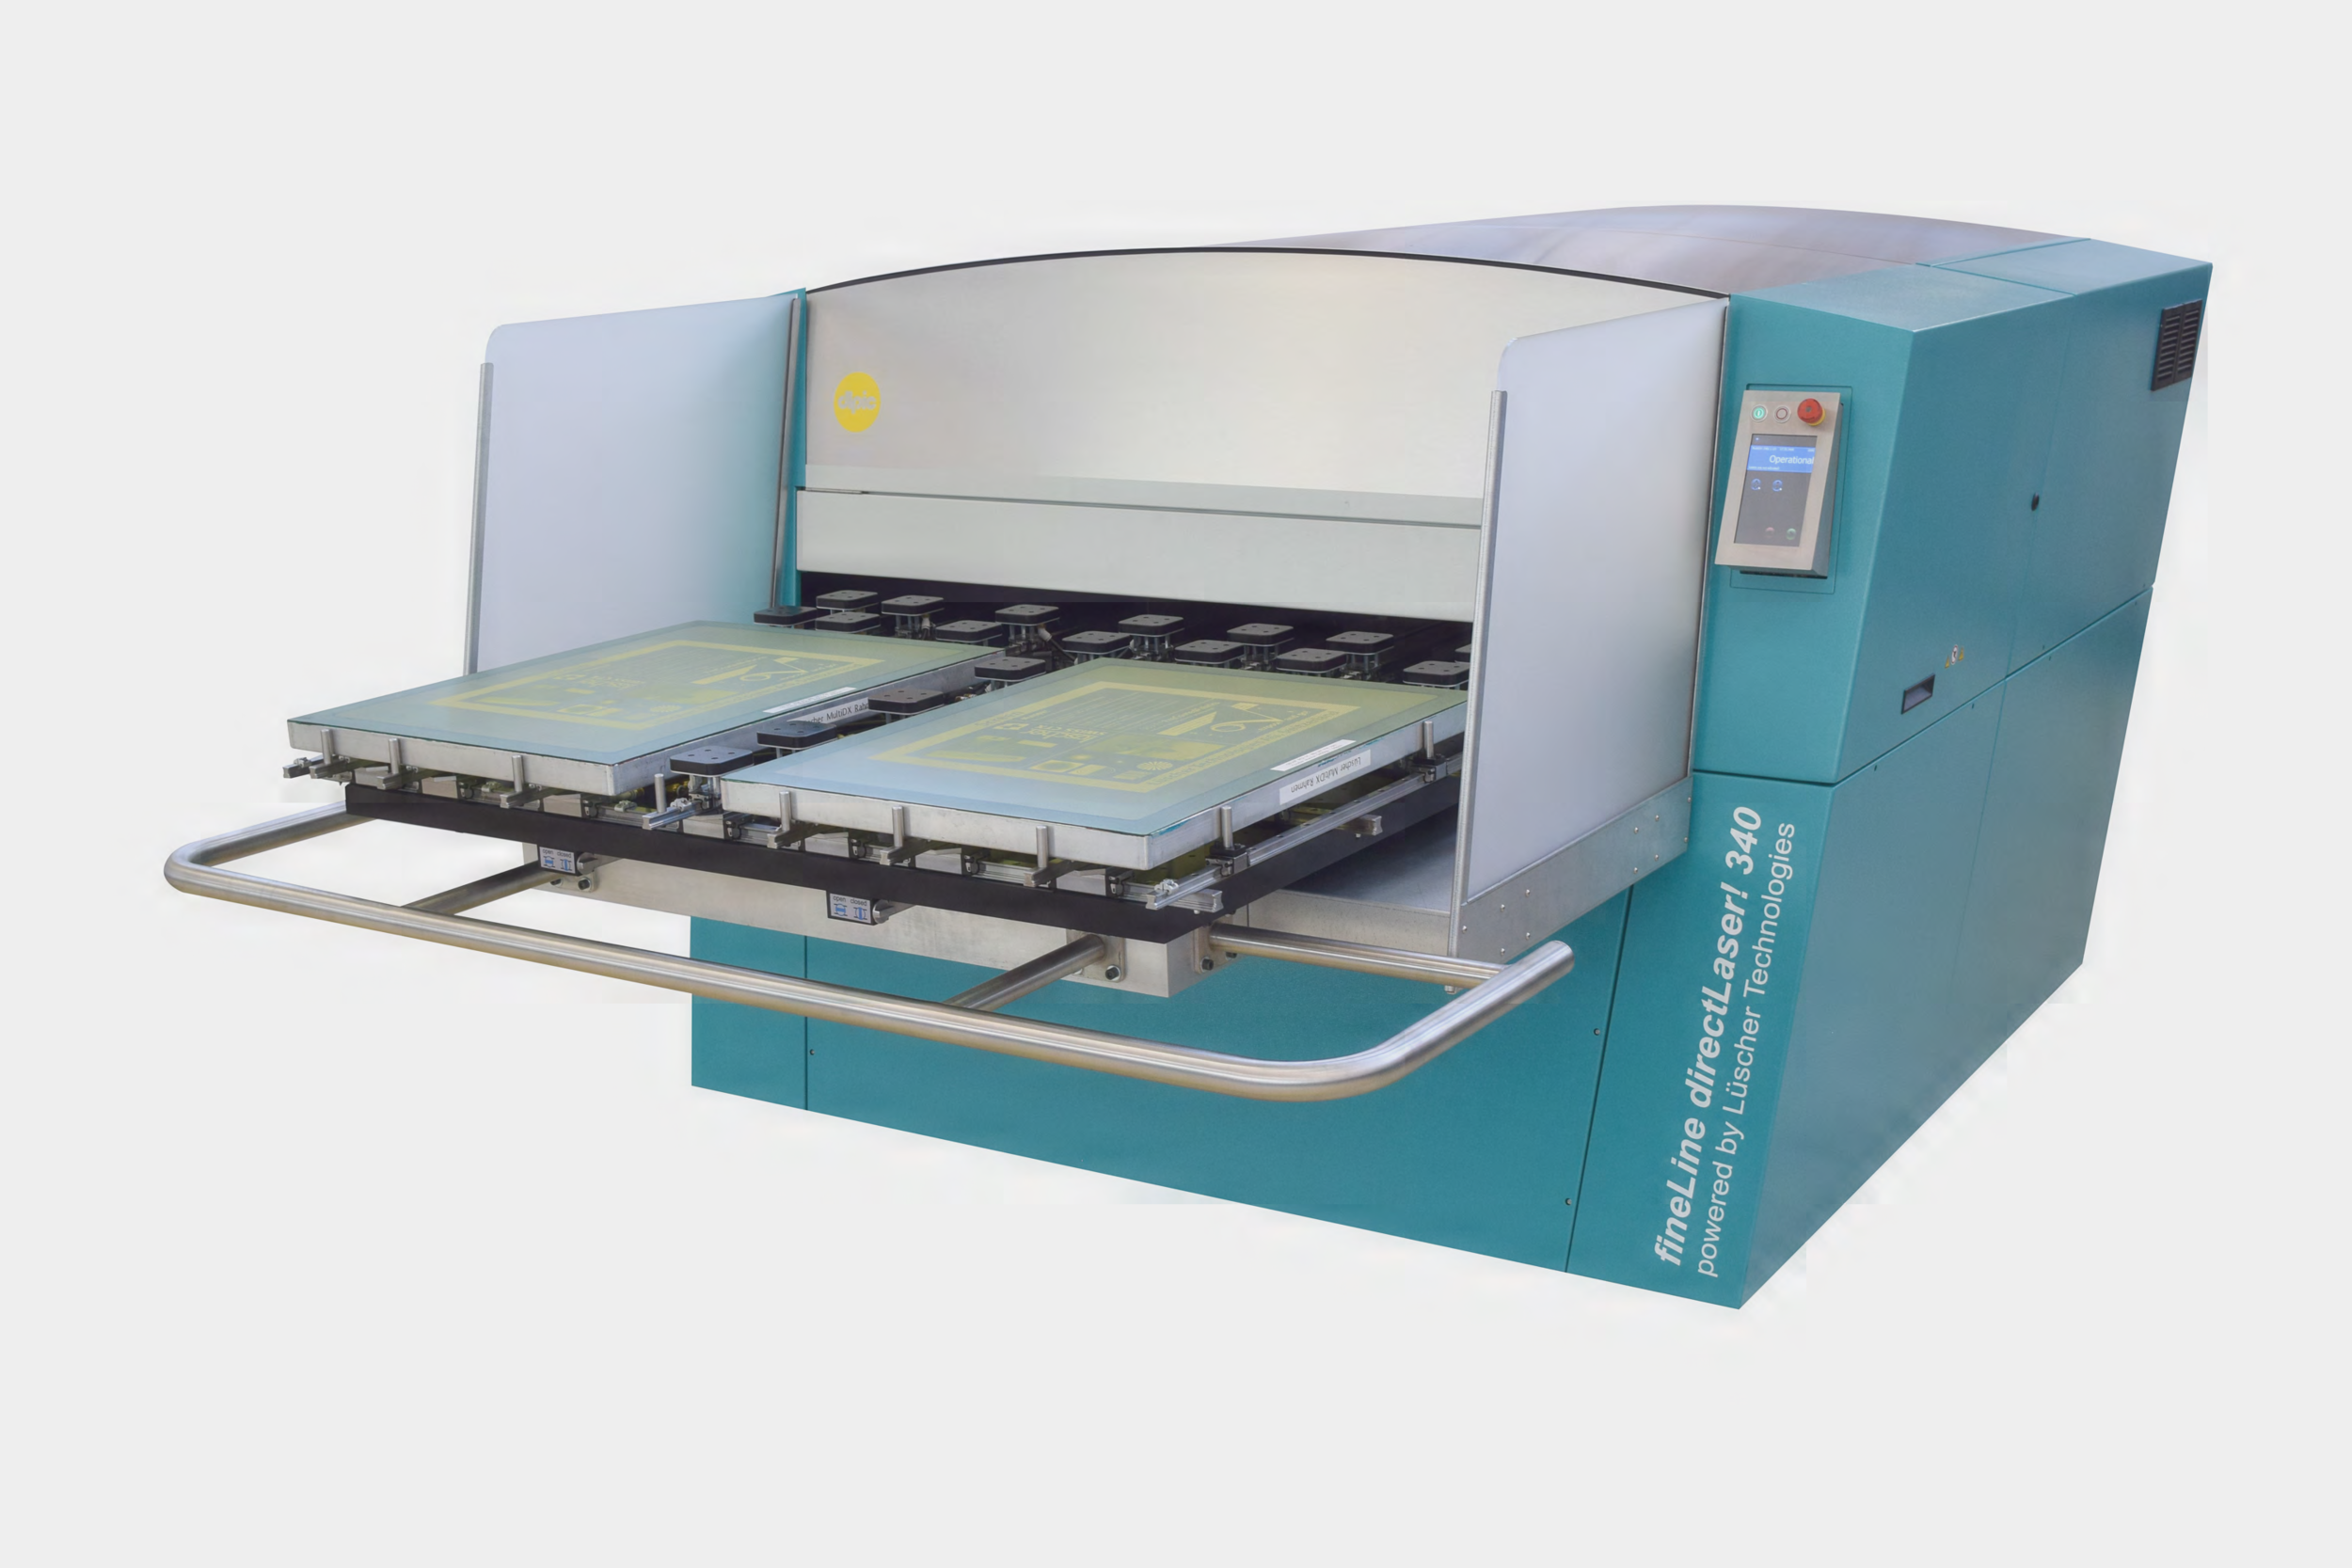 The new   fineLine directLaser!   digital image setter powered by Lüscher Technologies. Direct laser screen imaging technology is derived from lithography and allows imaging/exposing with 1270, 2540 or 5080 dpi in same machine. Highest quality screens produced with any mesh/emulsion/EOM combination at highest throughput.        Photo courtesy of dlp imaging corp. (dlpic), Ronkonkoma, NY — © 2017